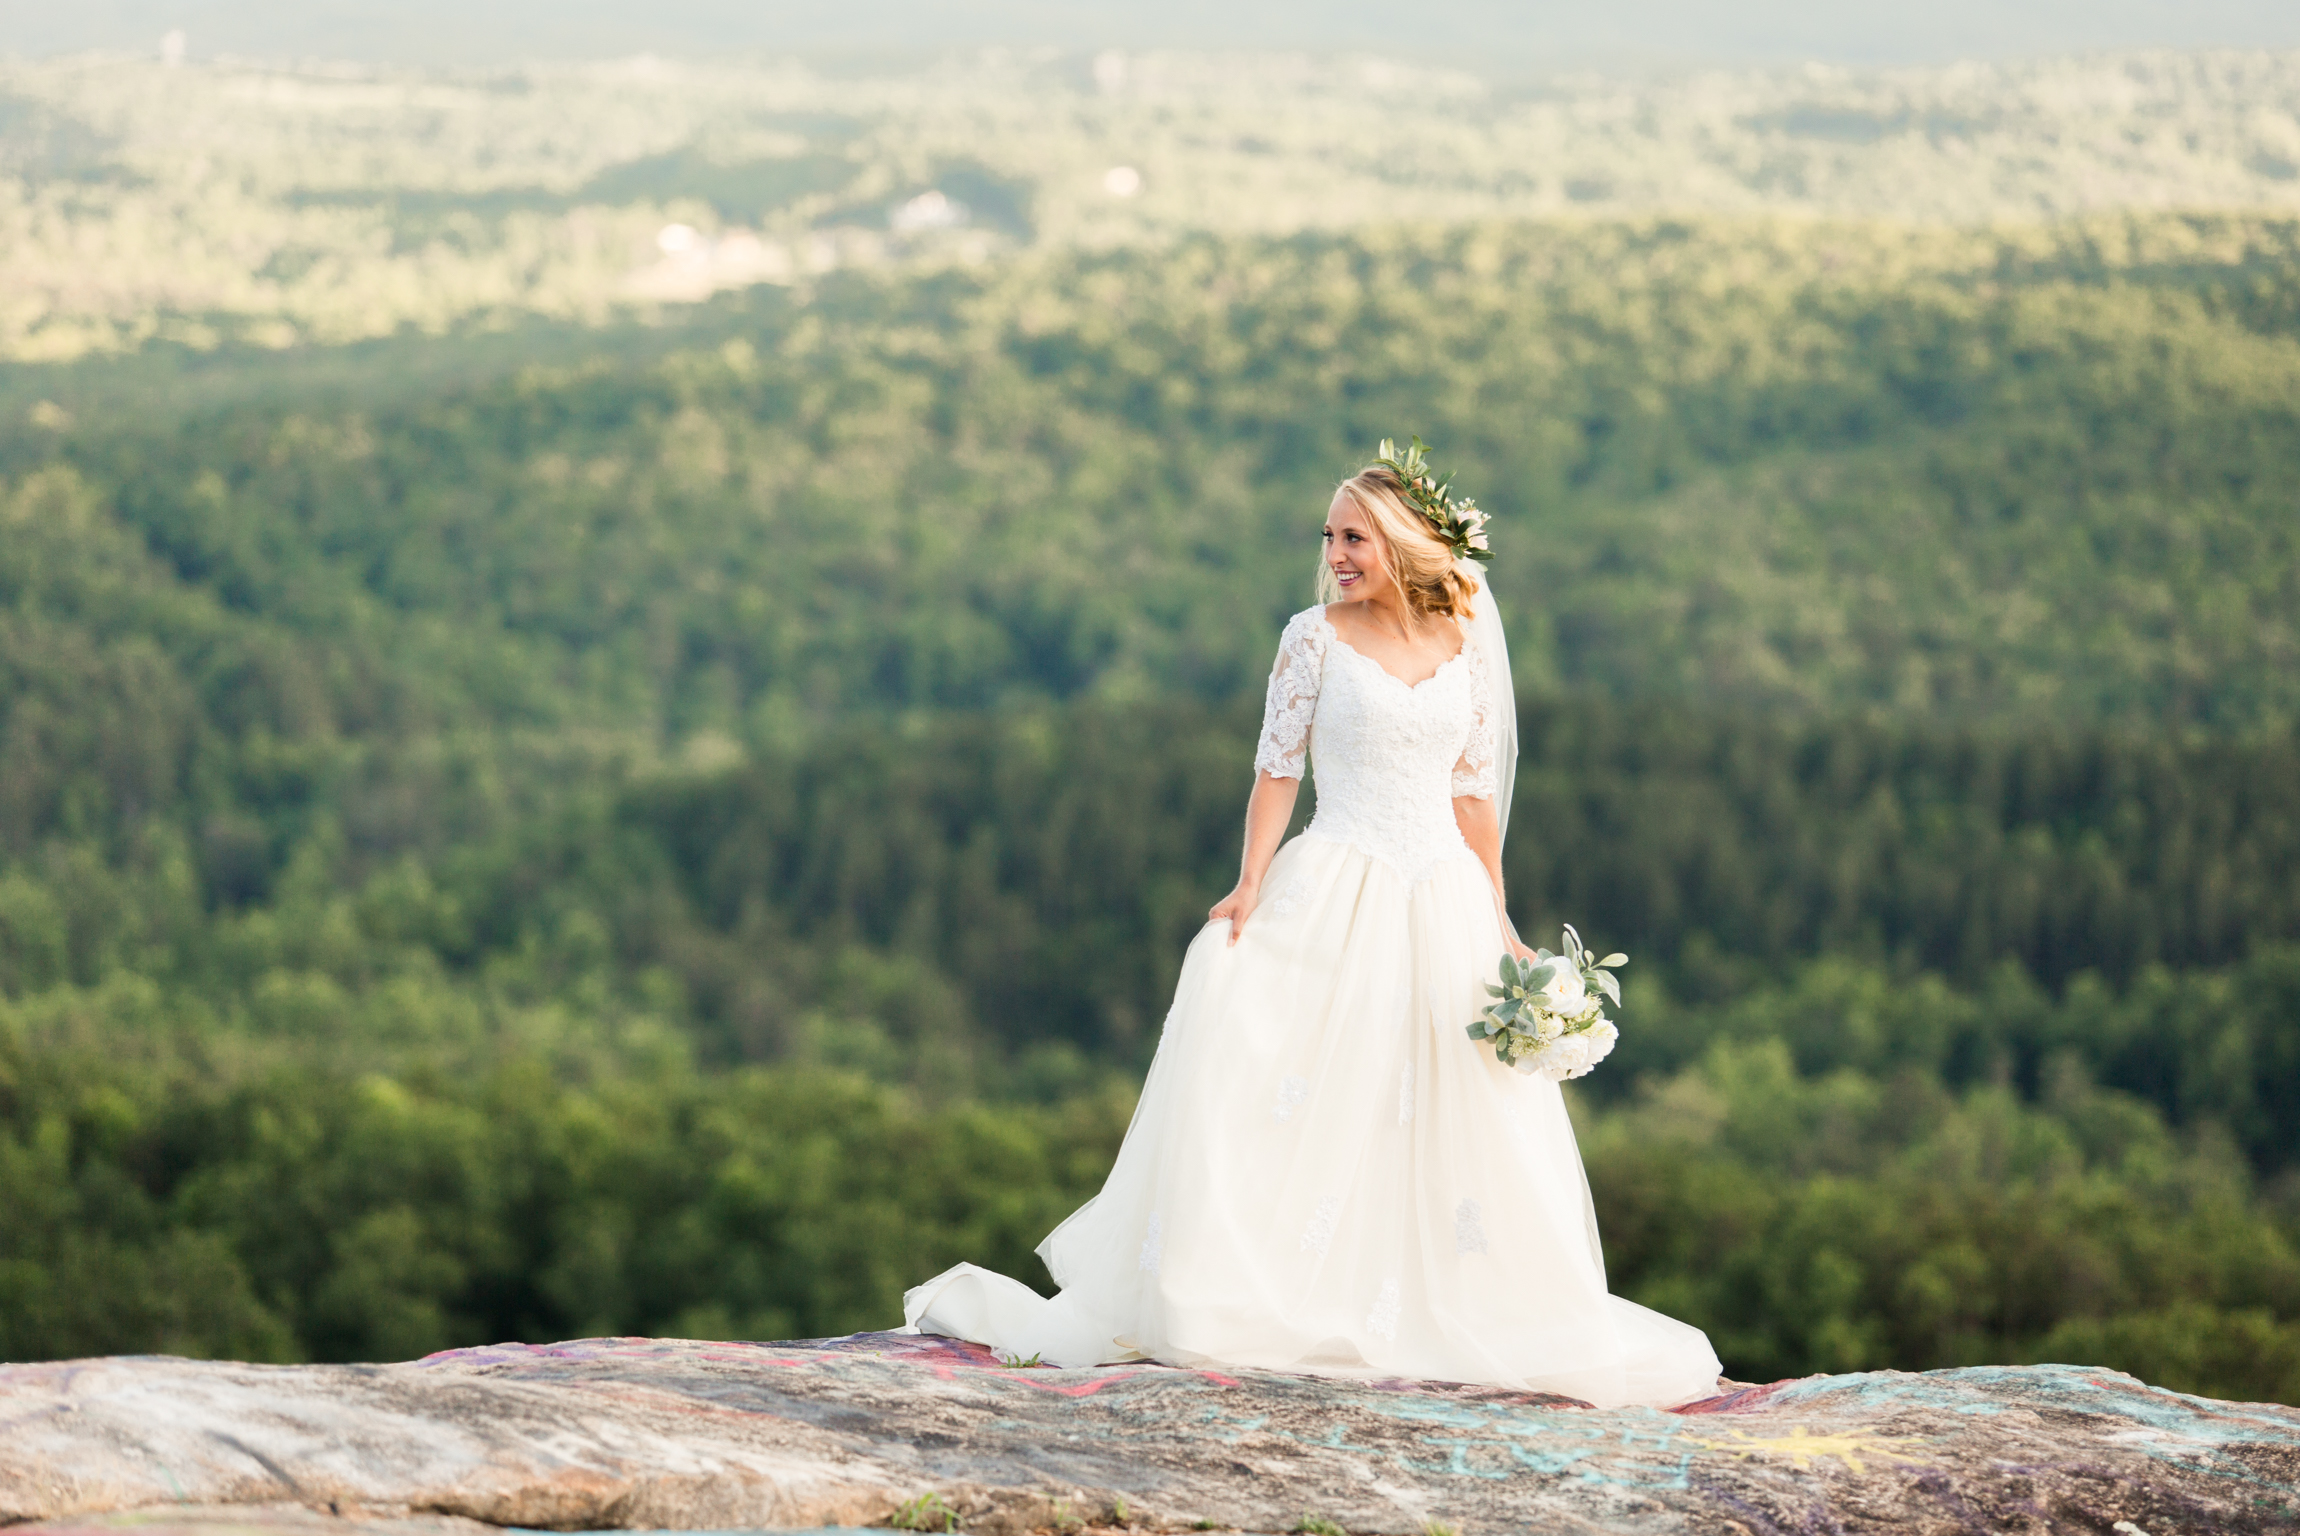 Lauren-Bald Rock South Carolina Bridal Photos-0582.jpg